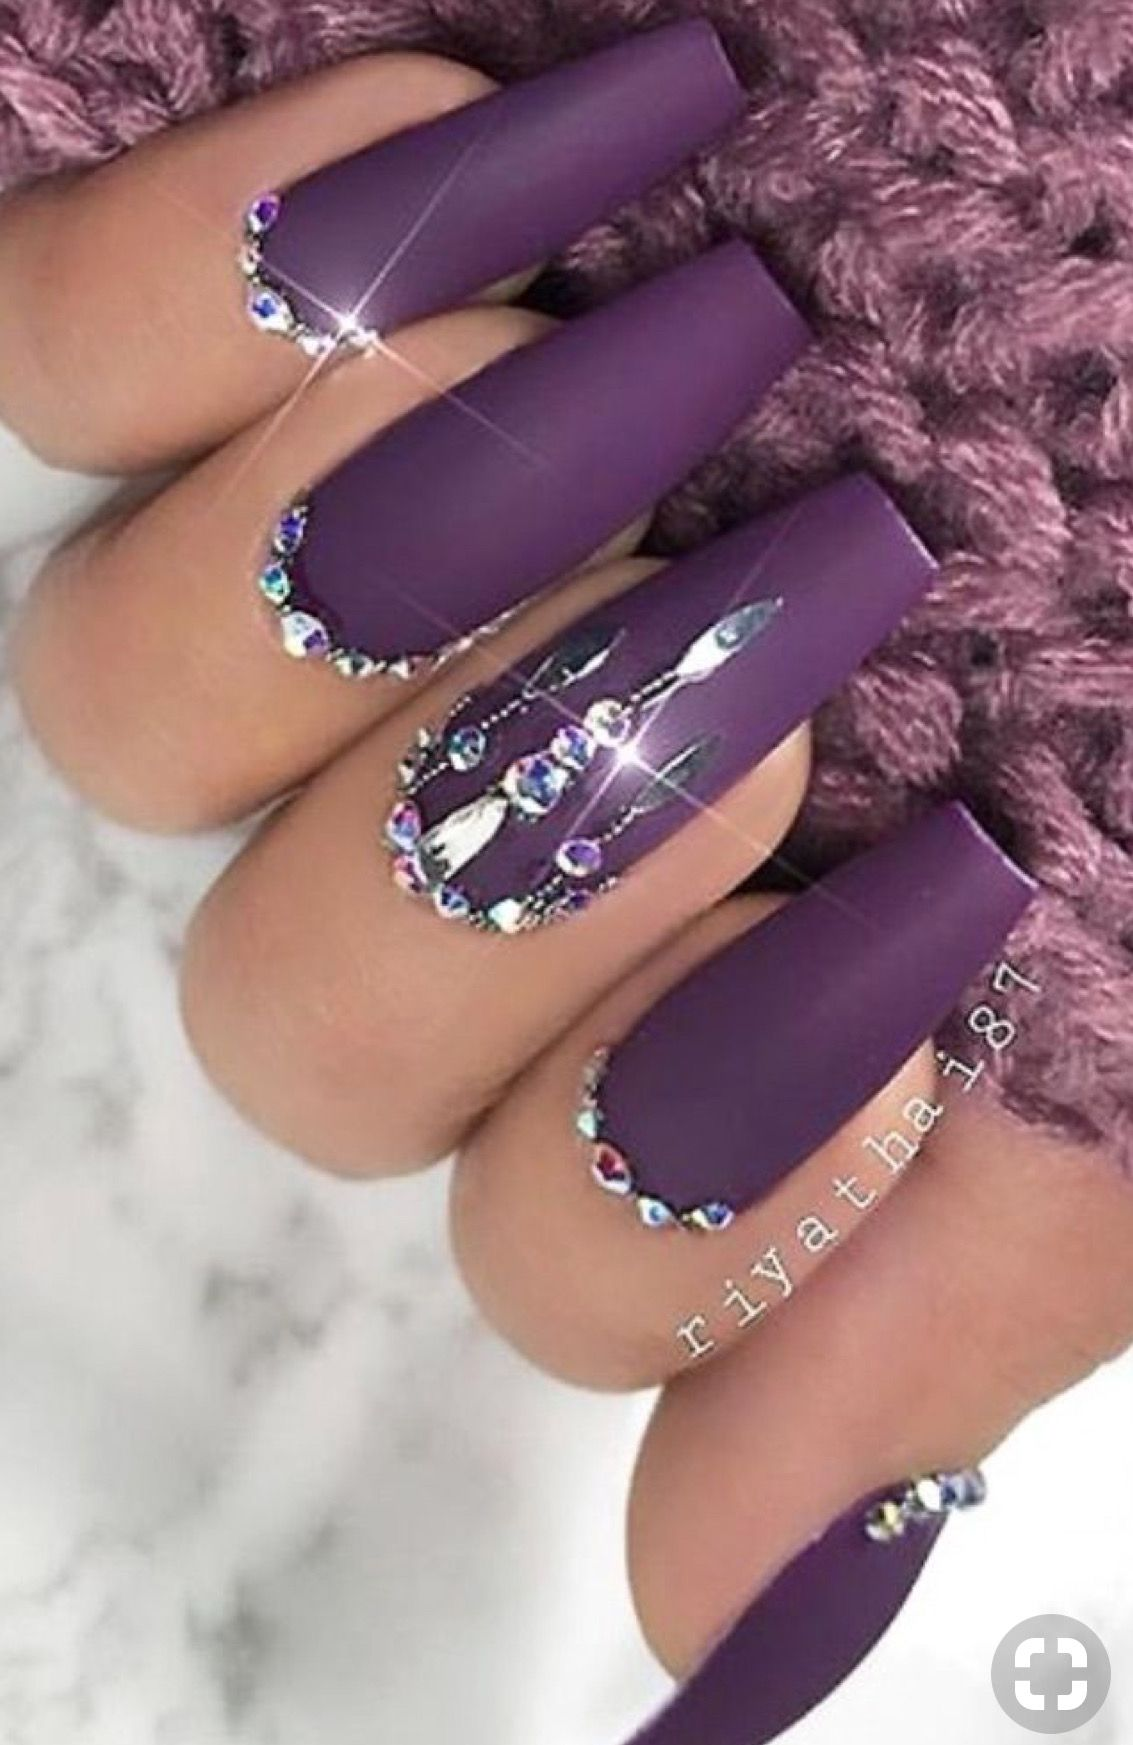 Purple Matte Nails 🍇 w rhinestones 💎 in 2020